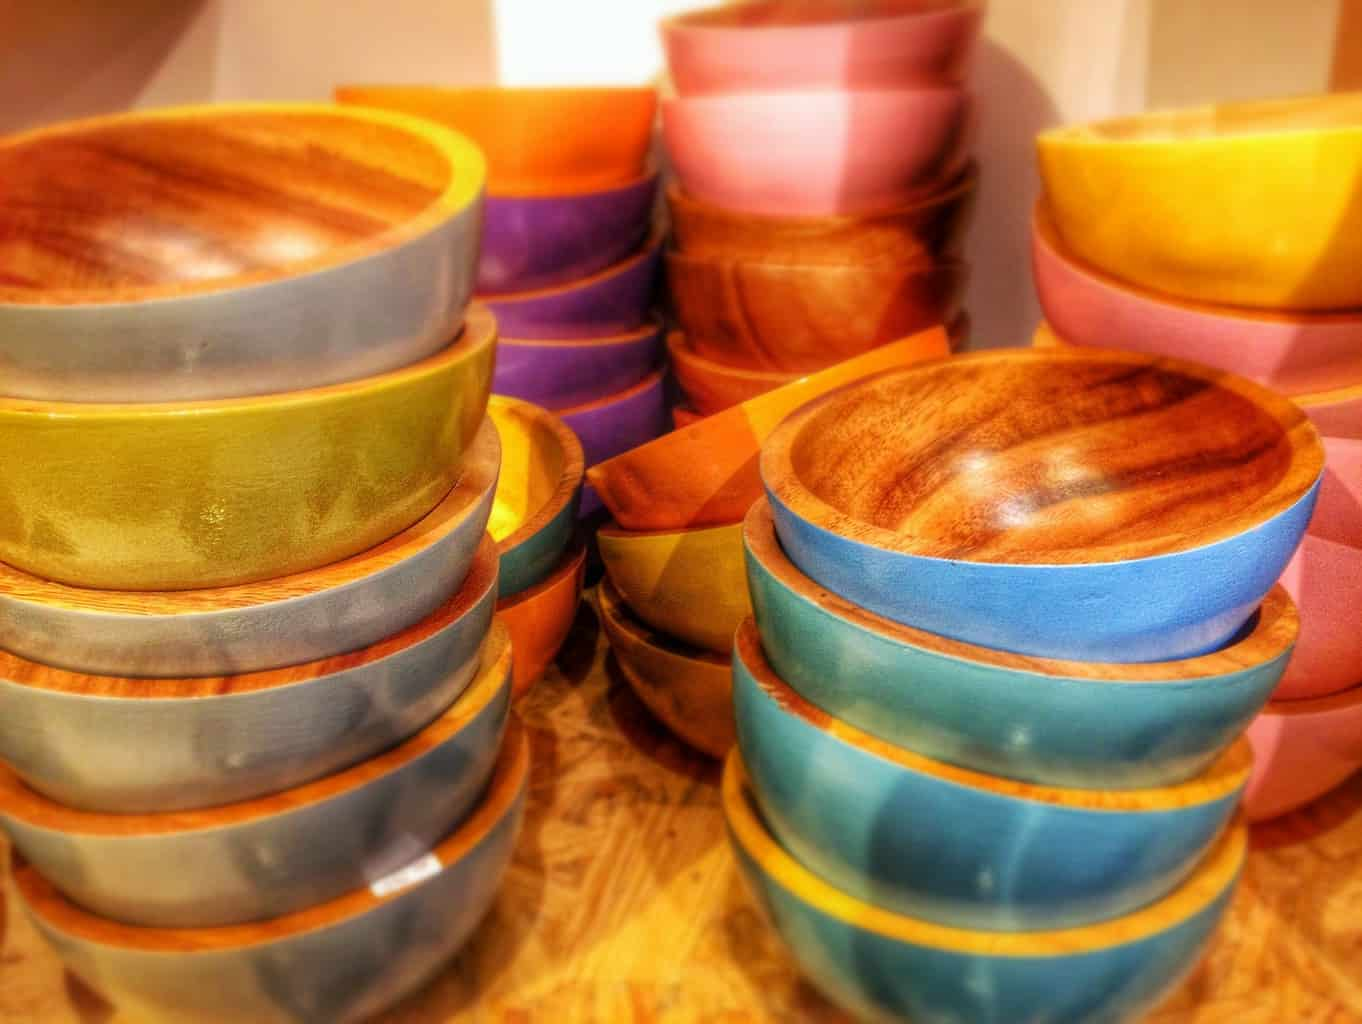 Clean wooden salad bowls stacked on top of each other